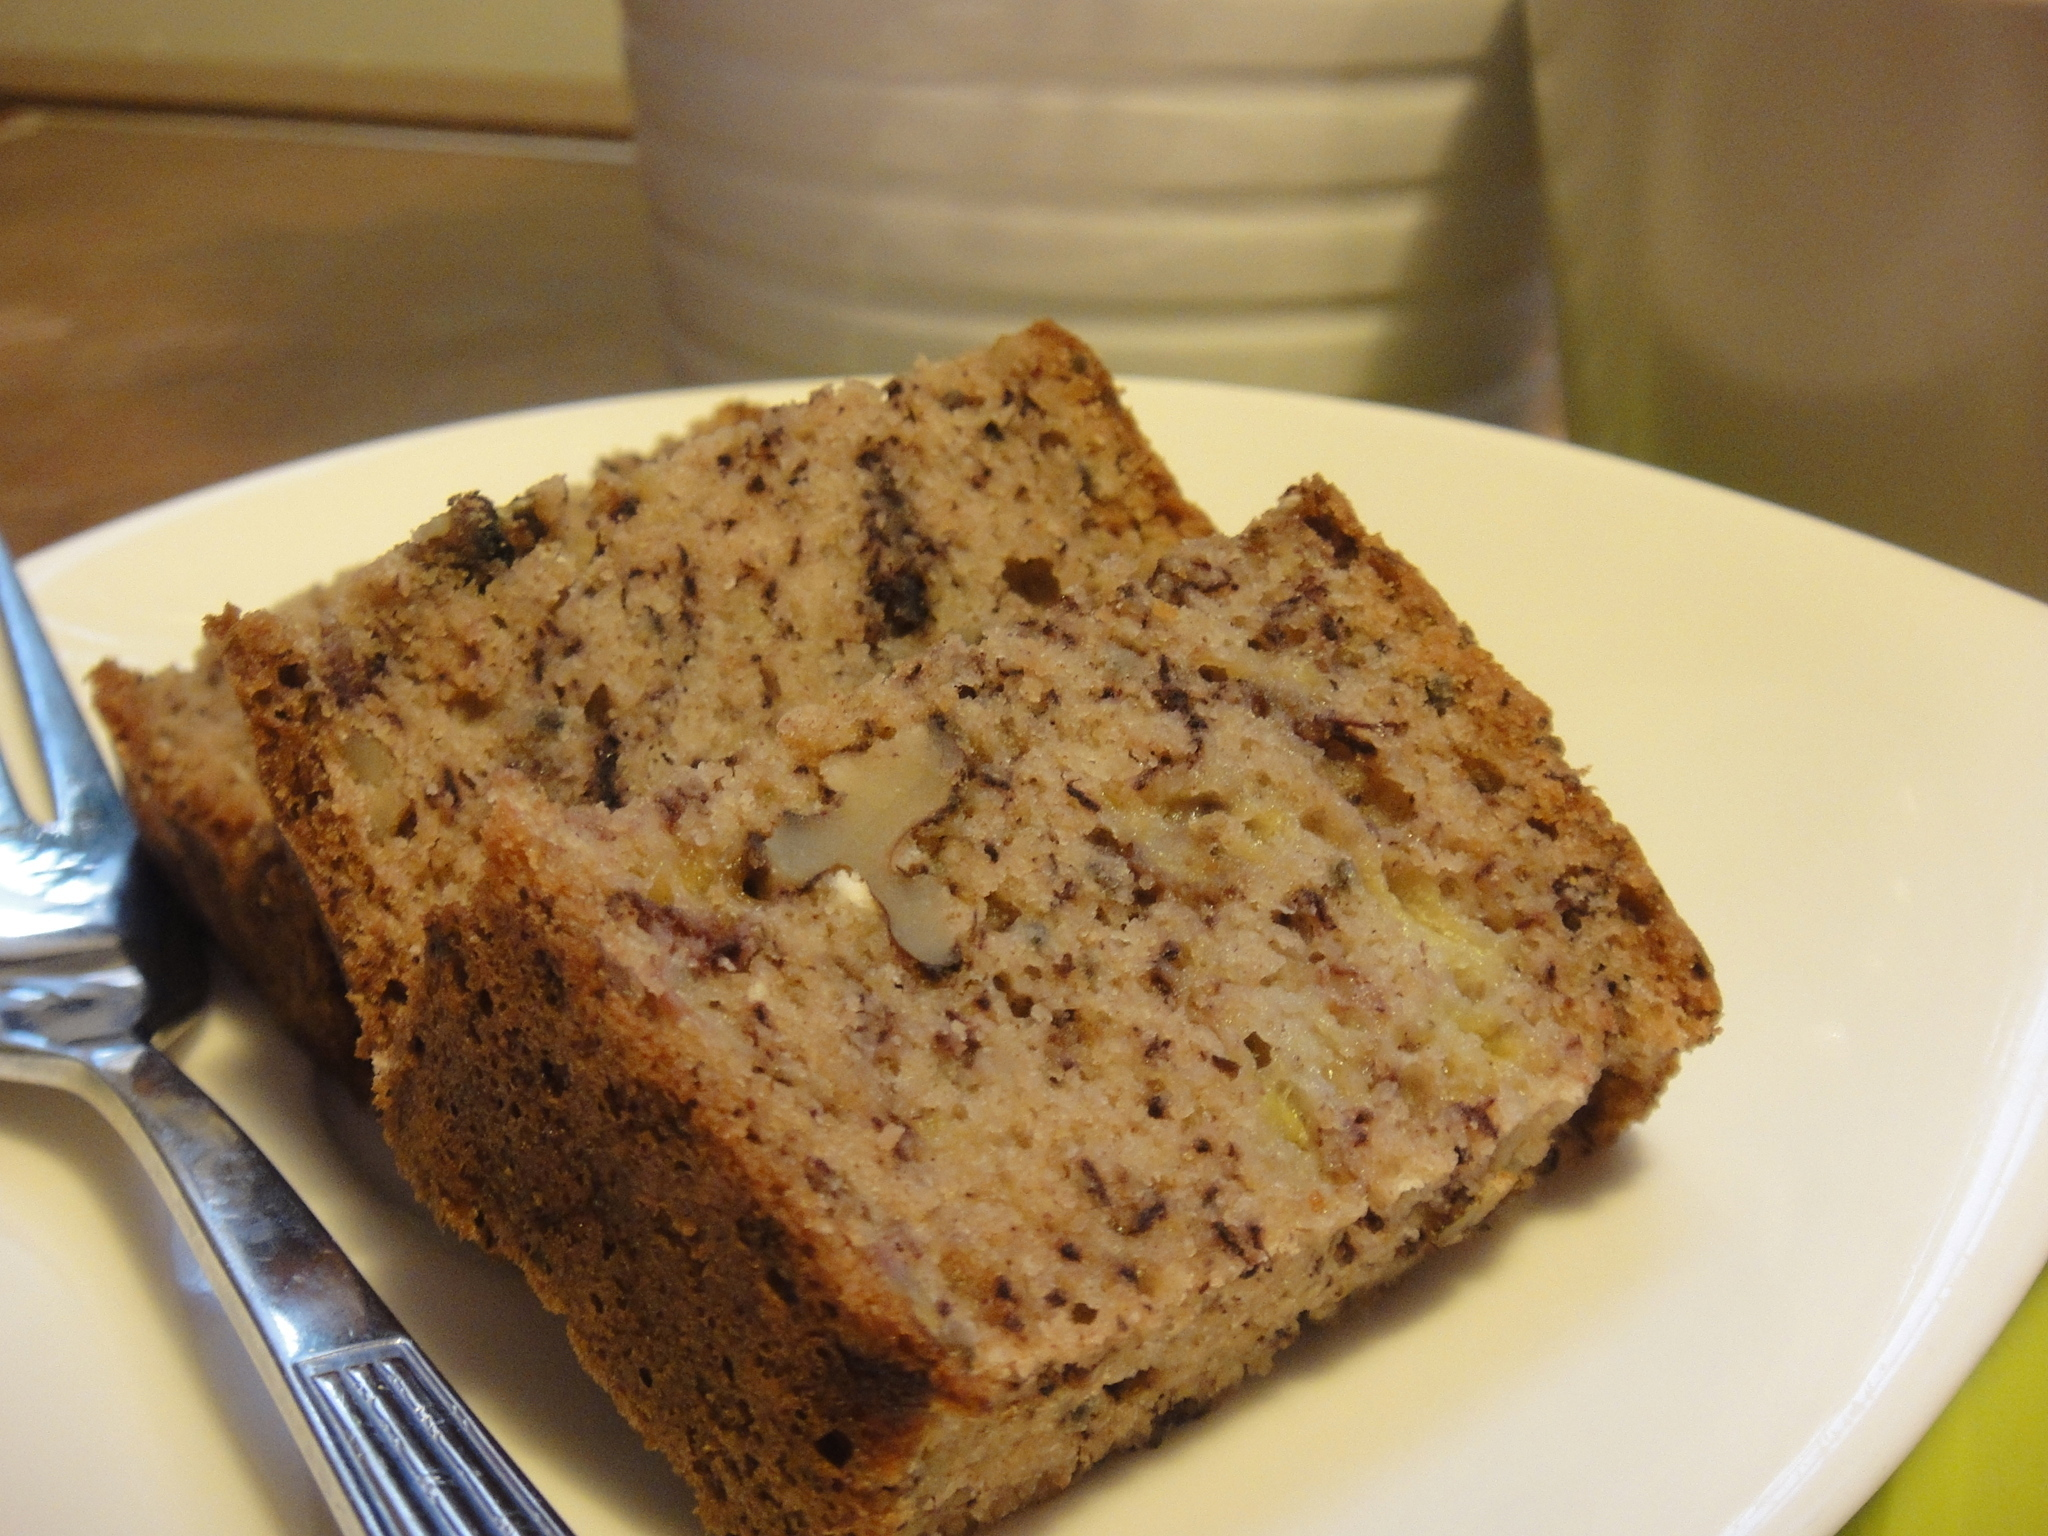 核桃香蕉蛋糕 Banana Walnut Bread